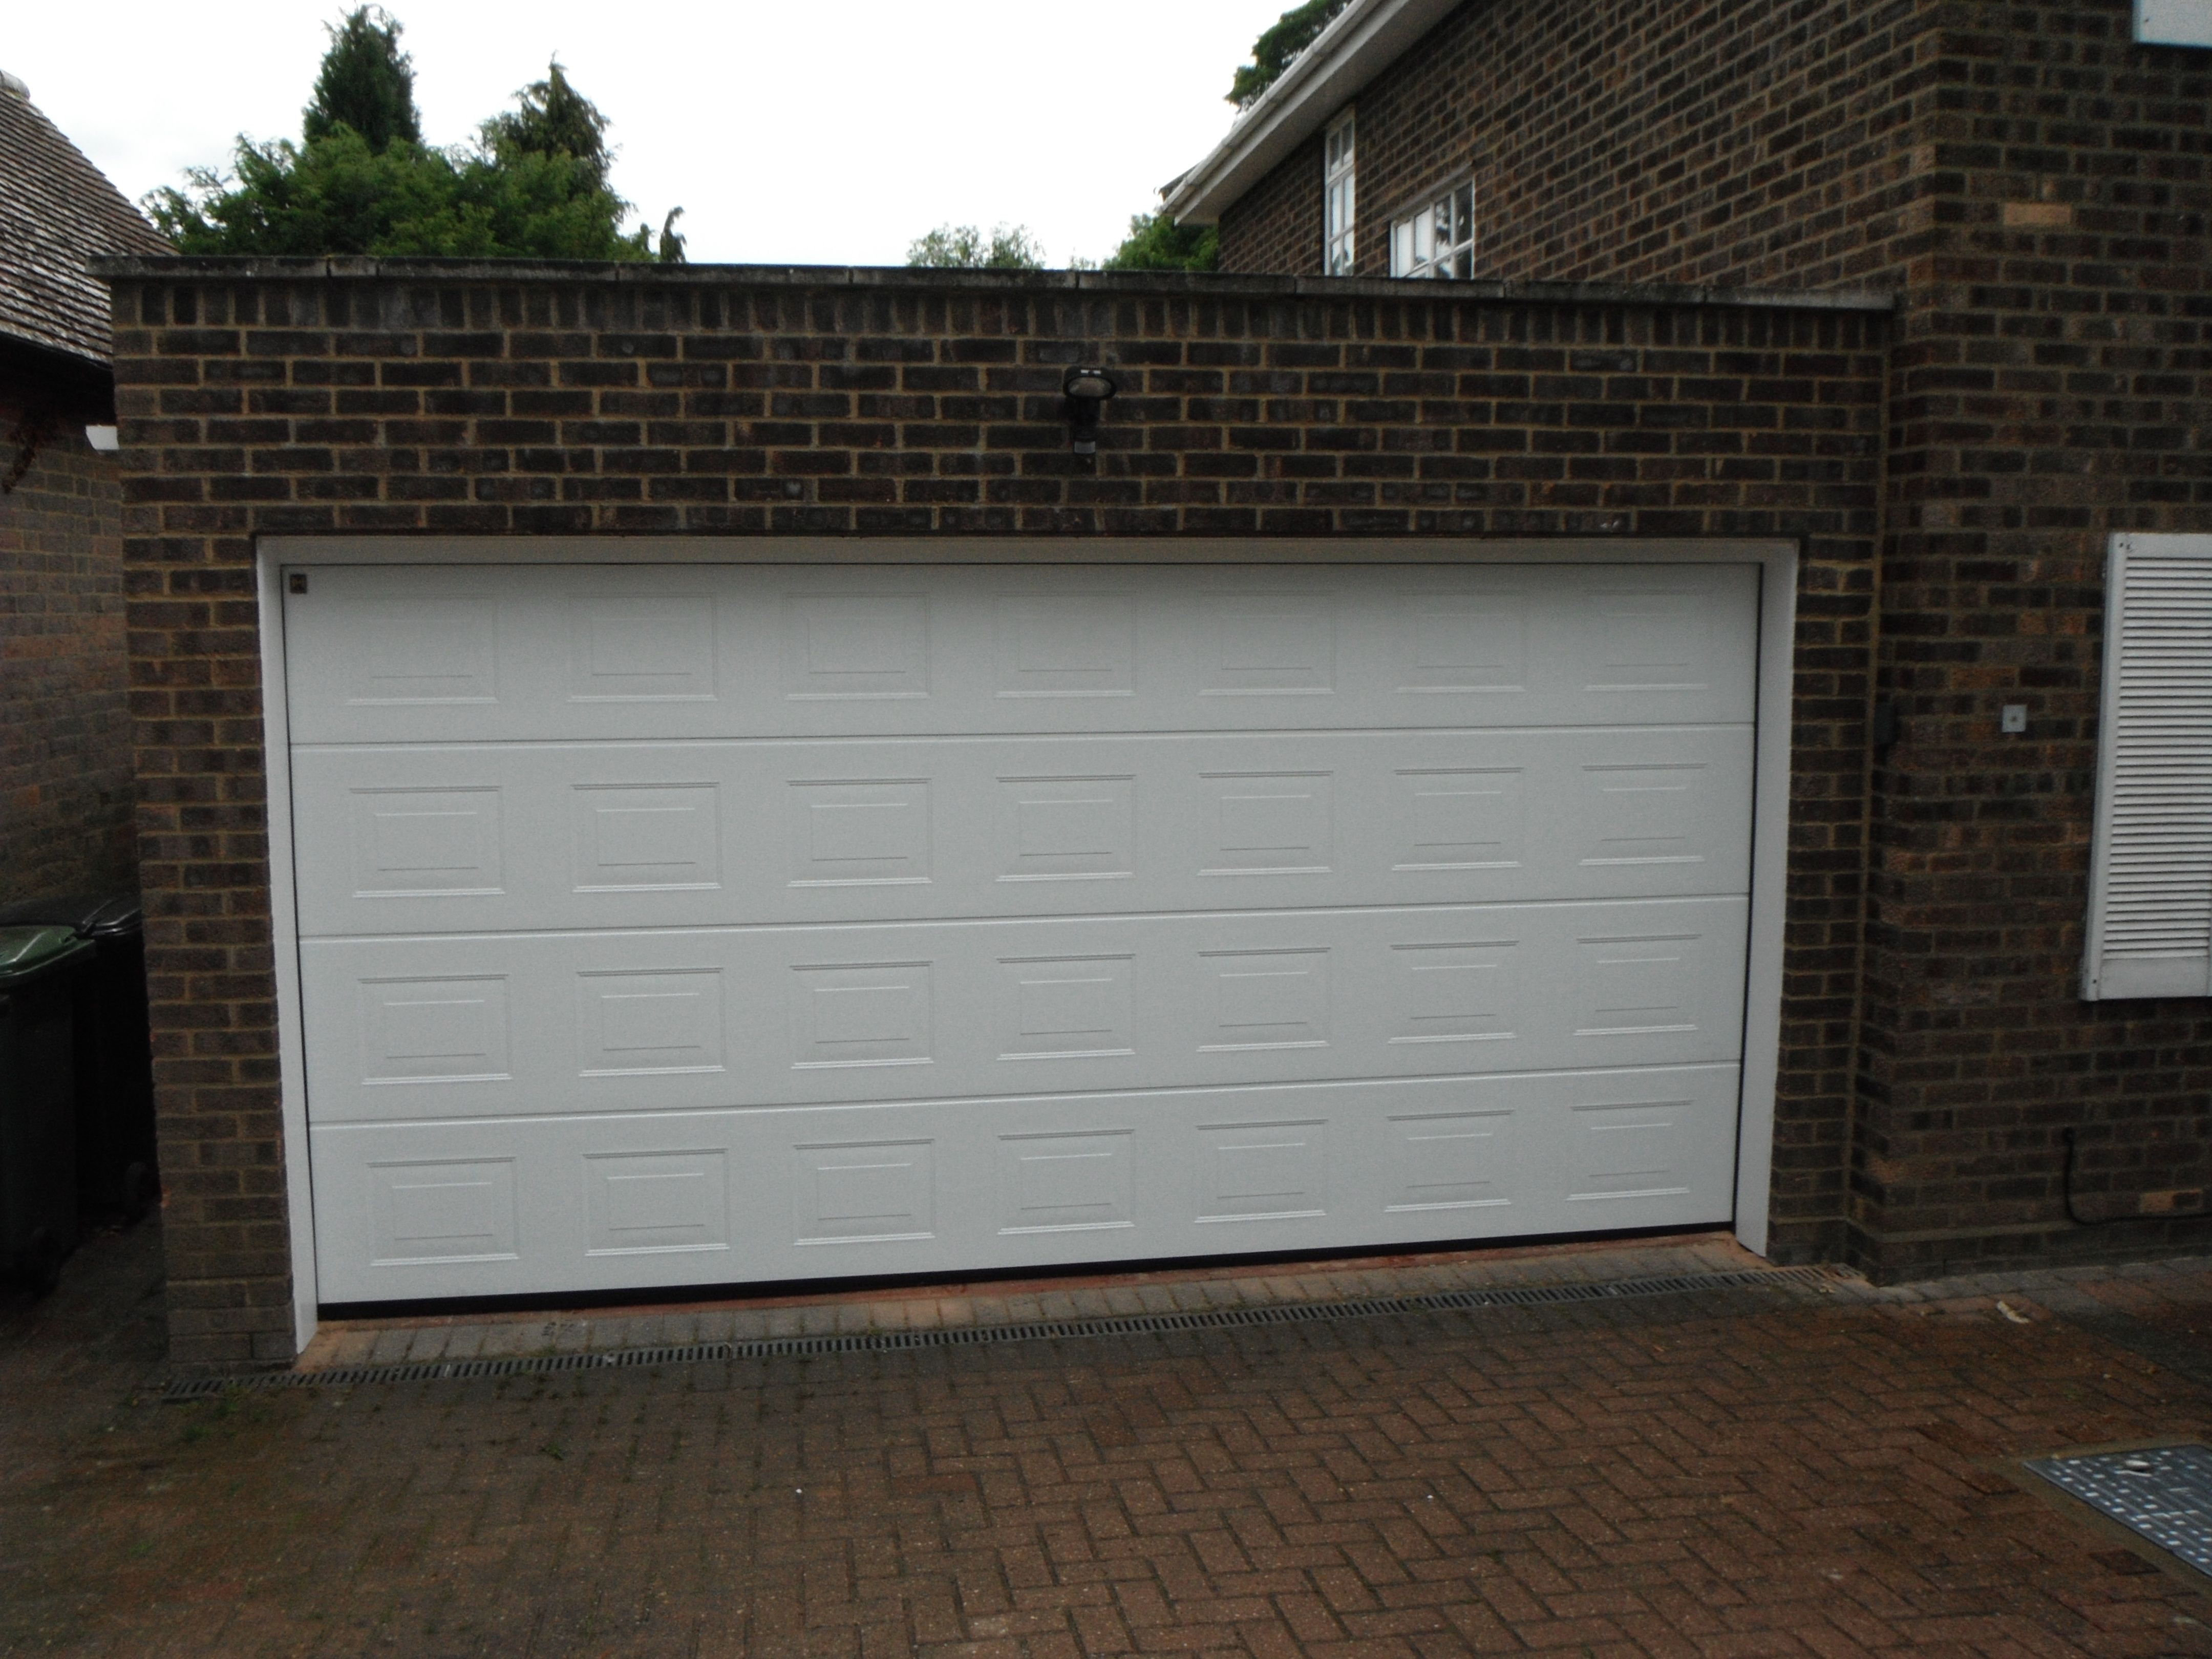 Hormann Double Sectional M Panel White Woodgrain Back Fix With White Upvc To Piers And Lintel To Cover Scarr Sectional Garage Doors White Paneling Garage Doors